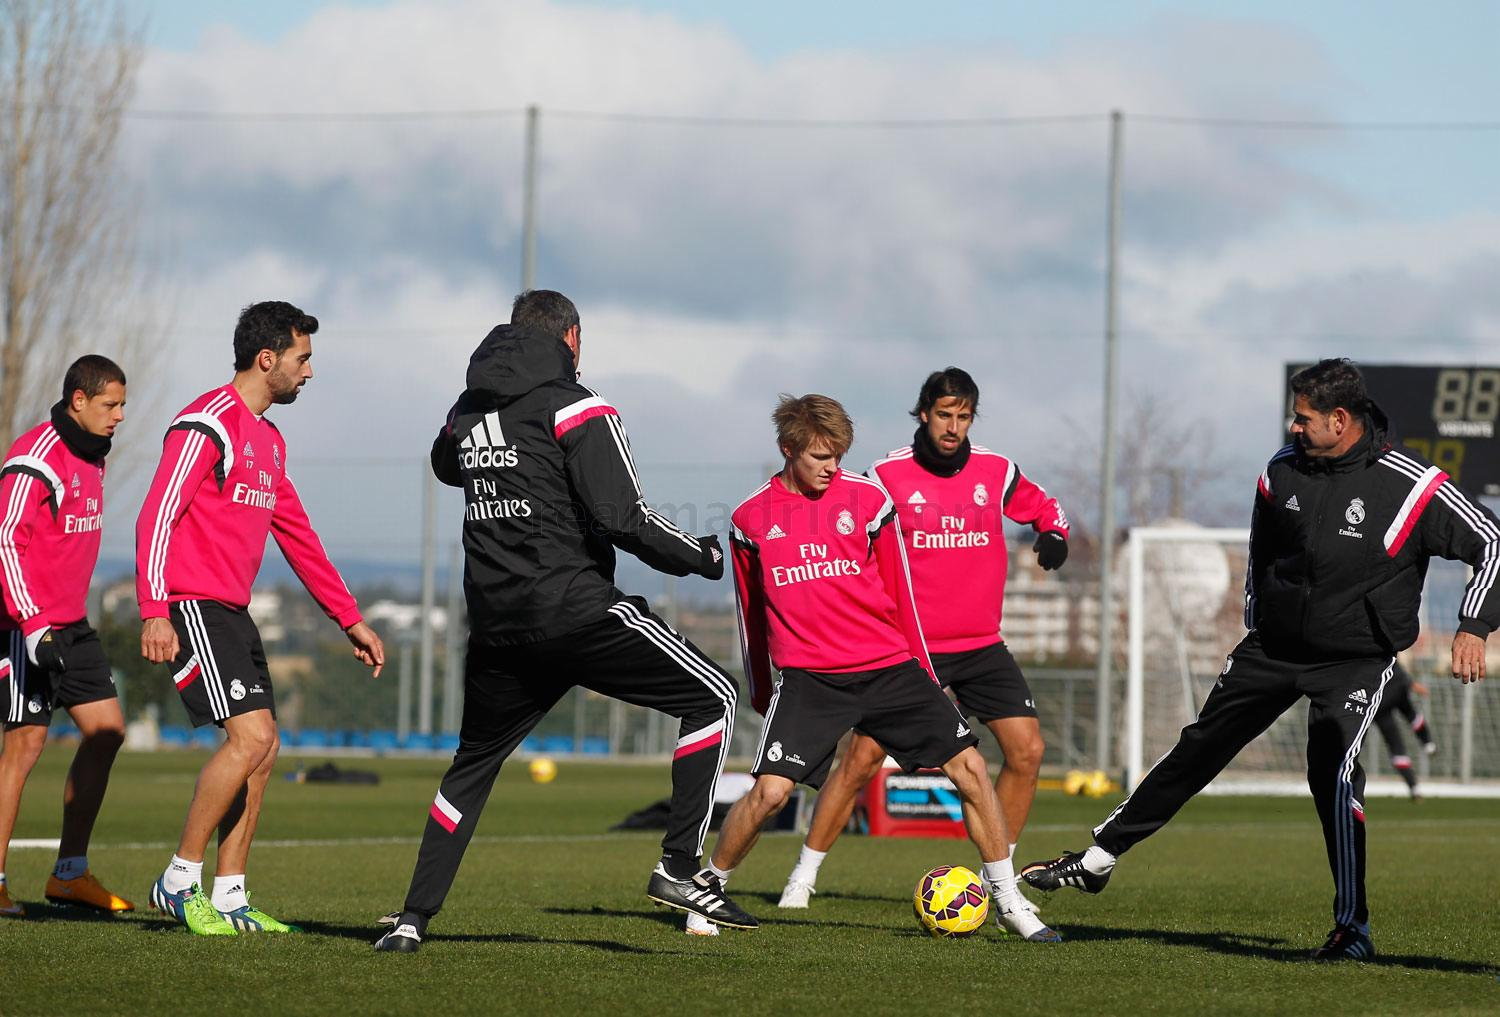 Real Madrid - Entrenamiento del Real Madrid - 01-02-2015